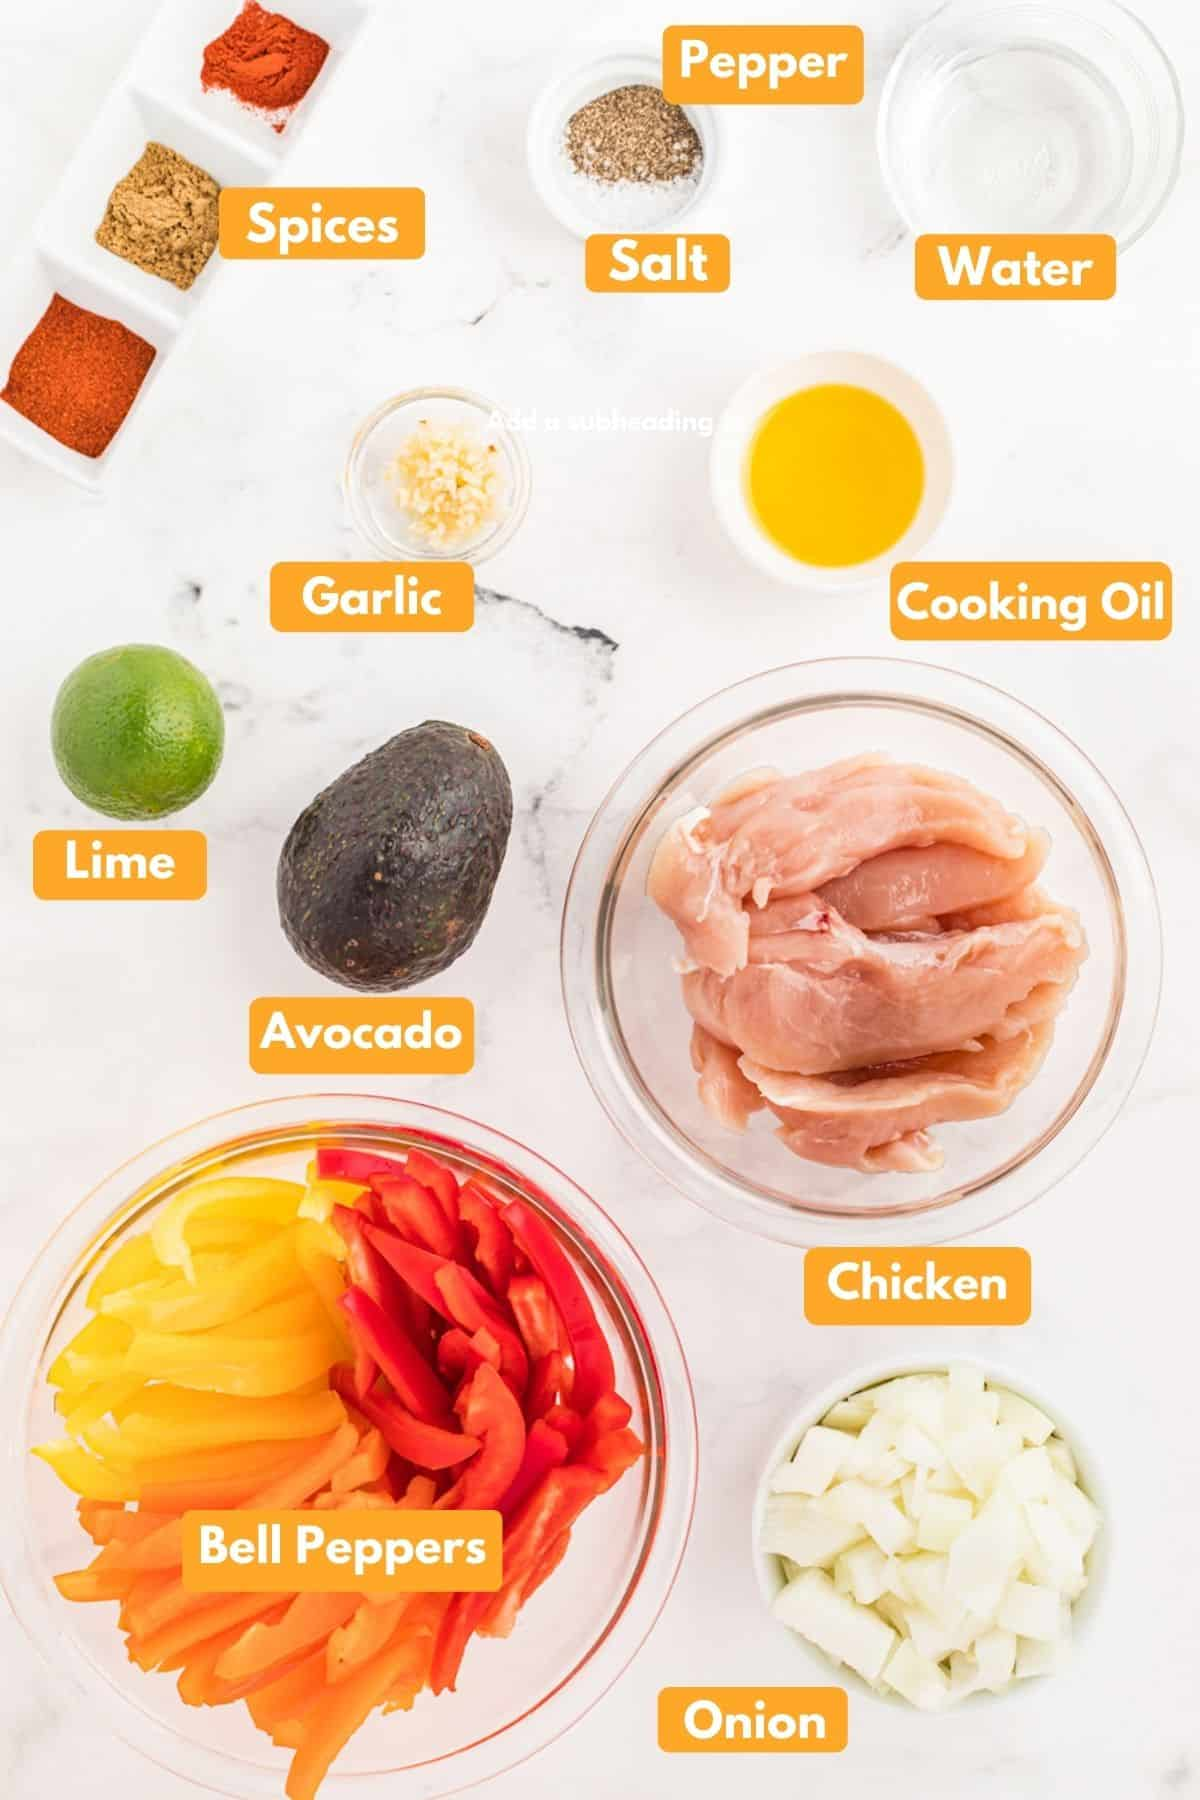 All the ingredients for fajitas laid out in bowls